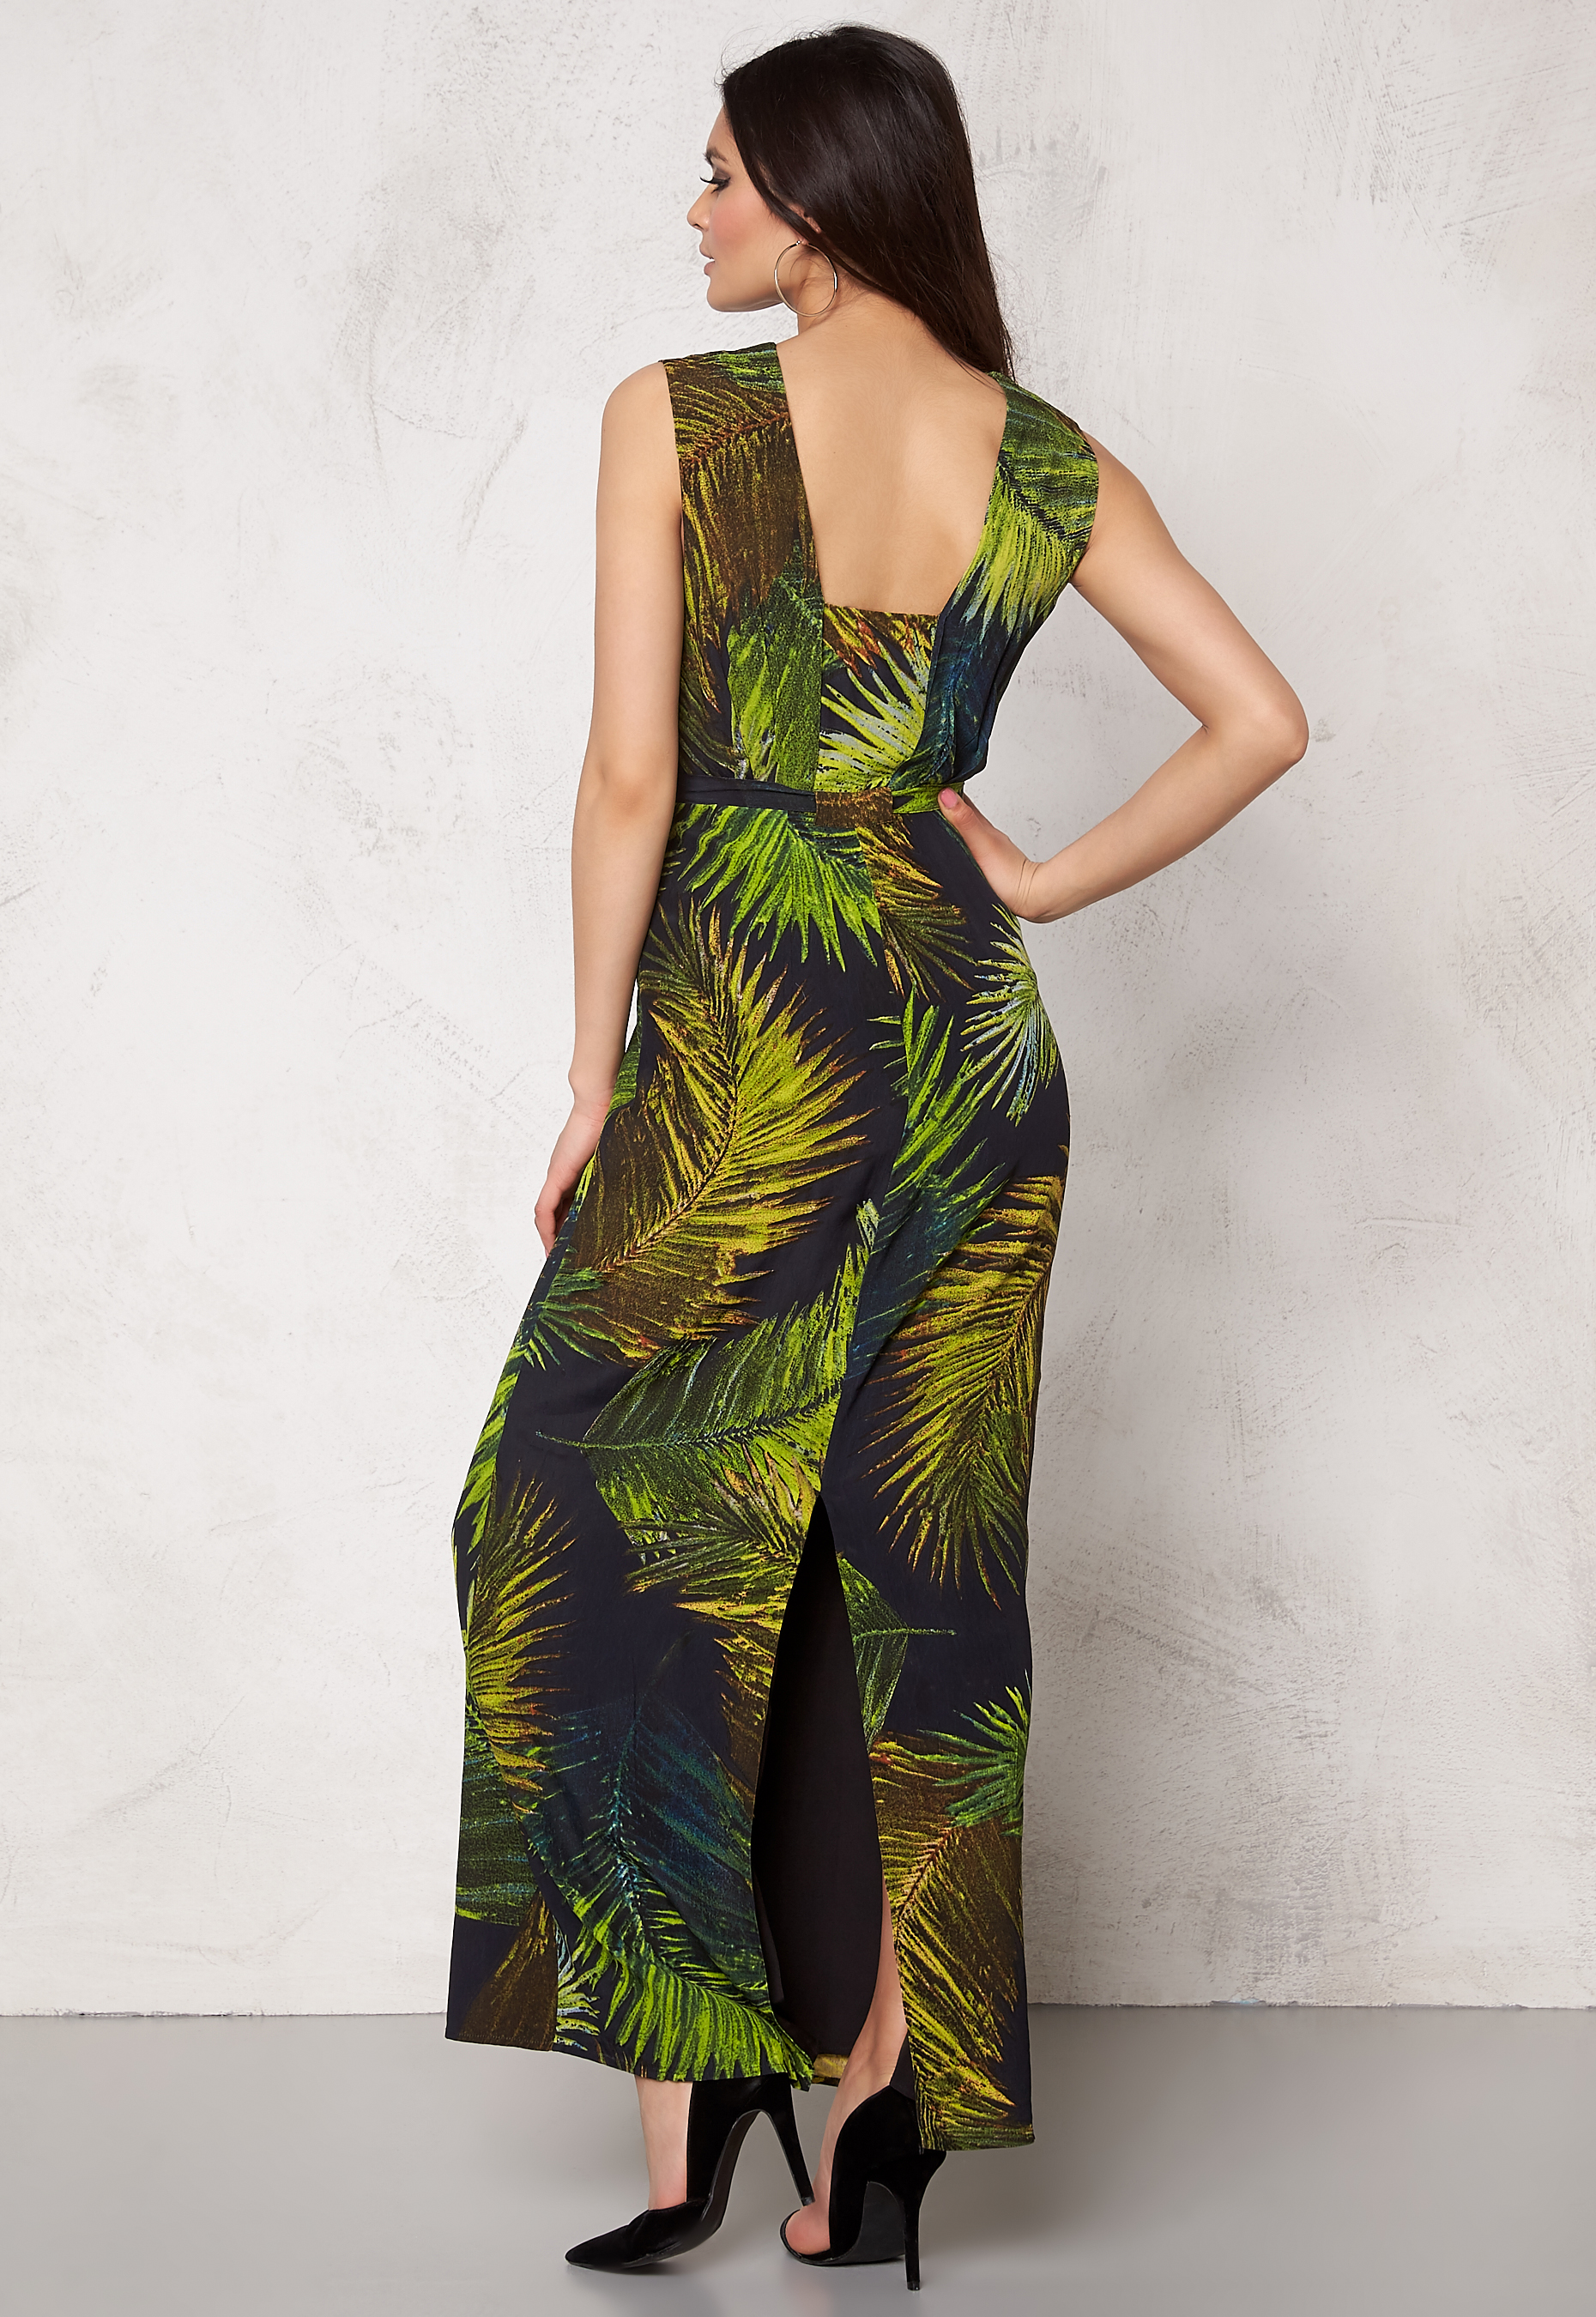 ad196f7fc06d Stylein Stormsriver Print - Bubbleroom